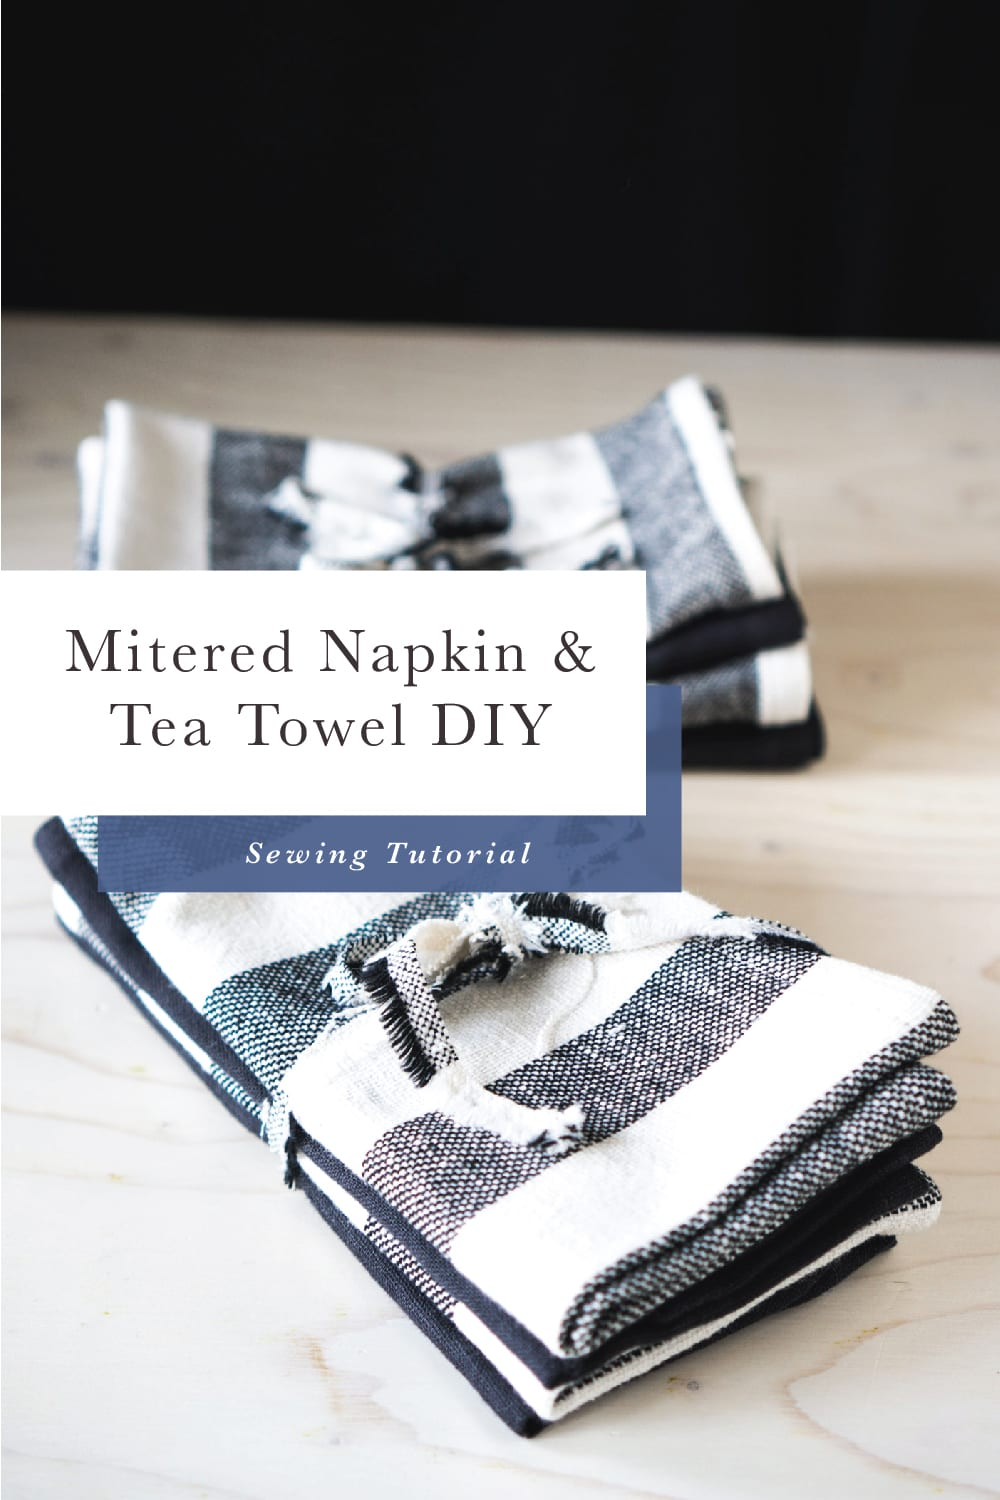 Easy Handmade Gifts // How to sew napkins and tea towels // Closet Case Files